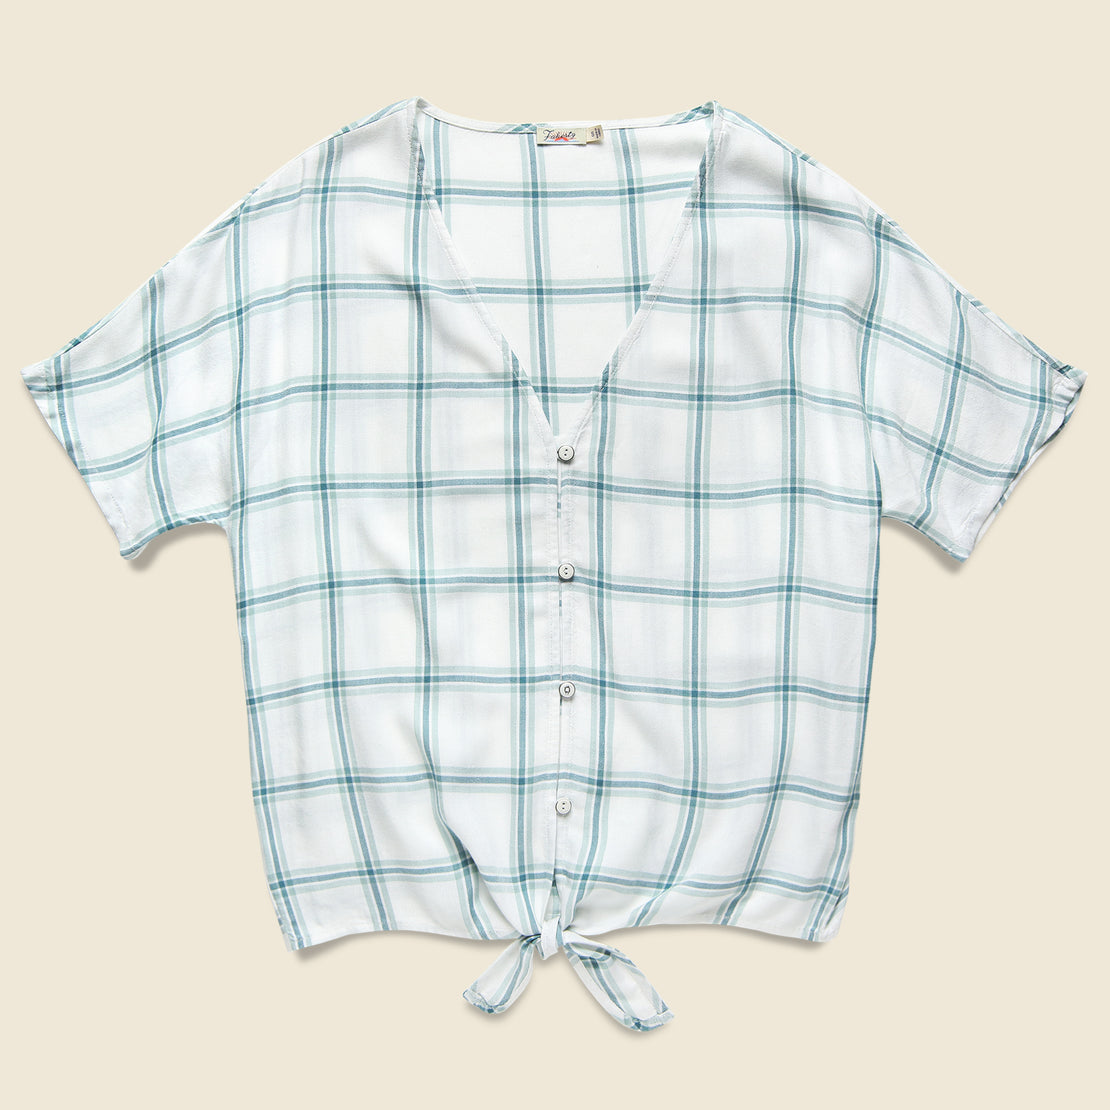 Faherty Alice Top - Coastal Windowpane